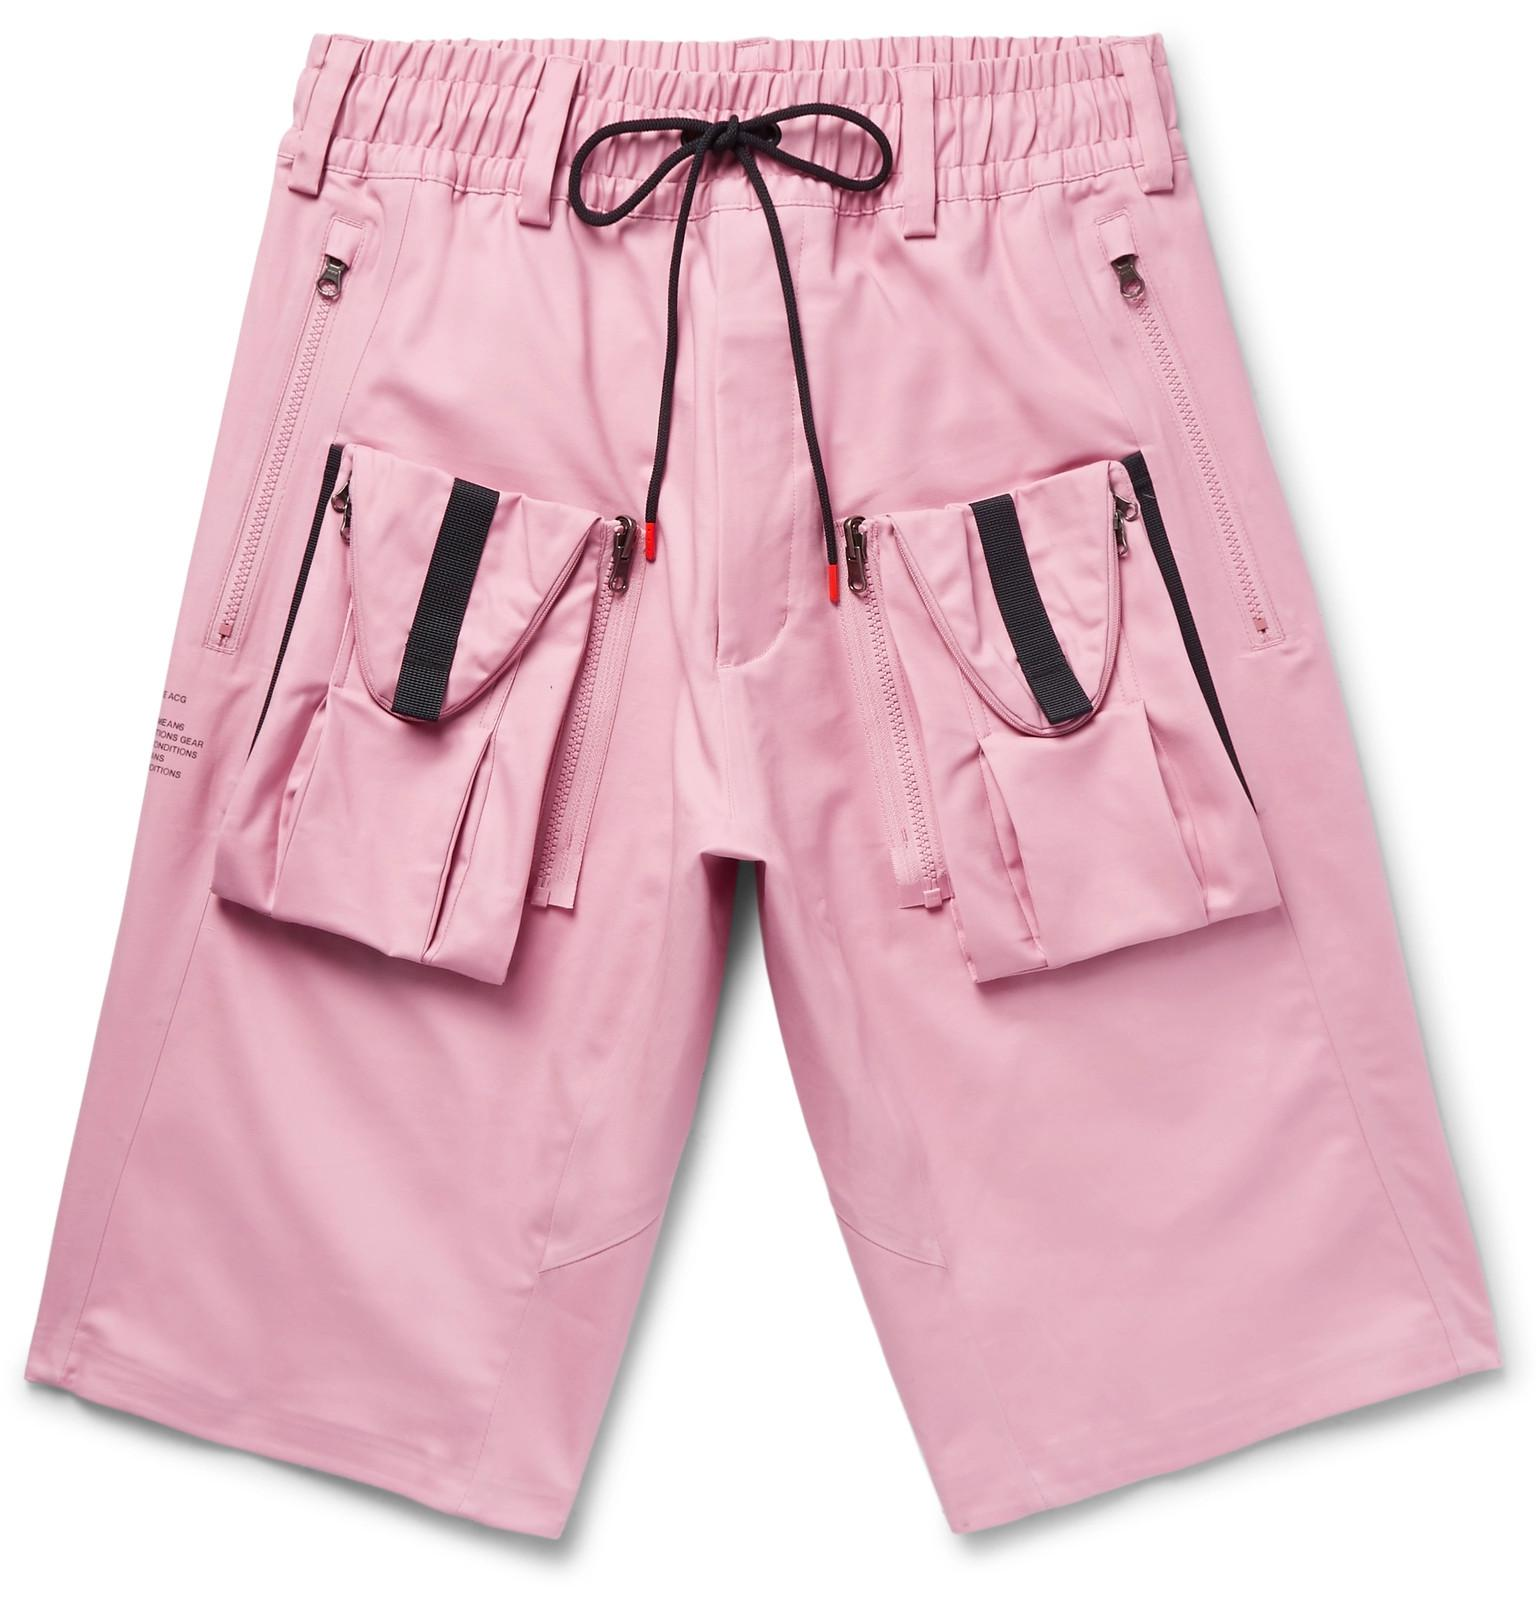 4684dac0661a8 Nike Lab Acg Deploy Cargo Stretch-cotton Shorts in Pink for Men - Lyst